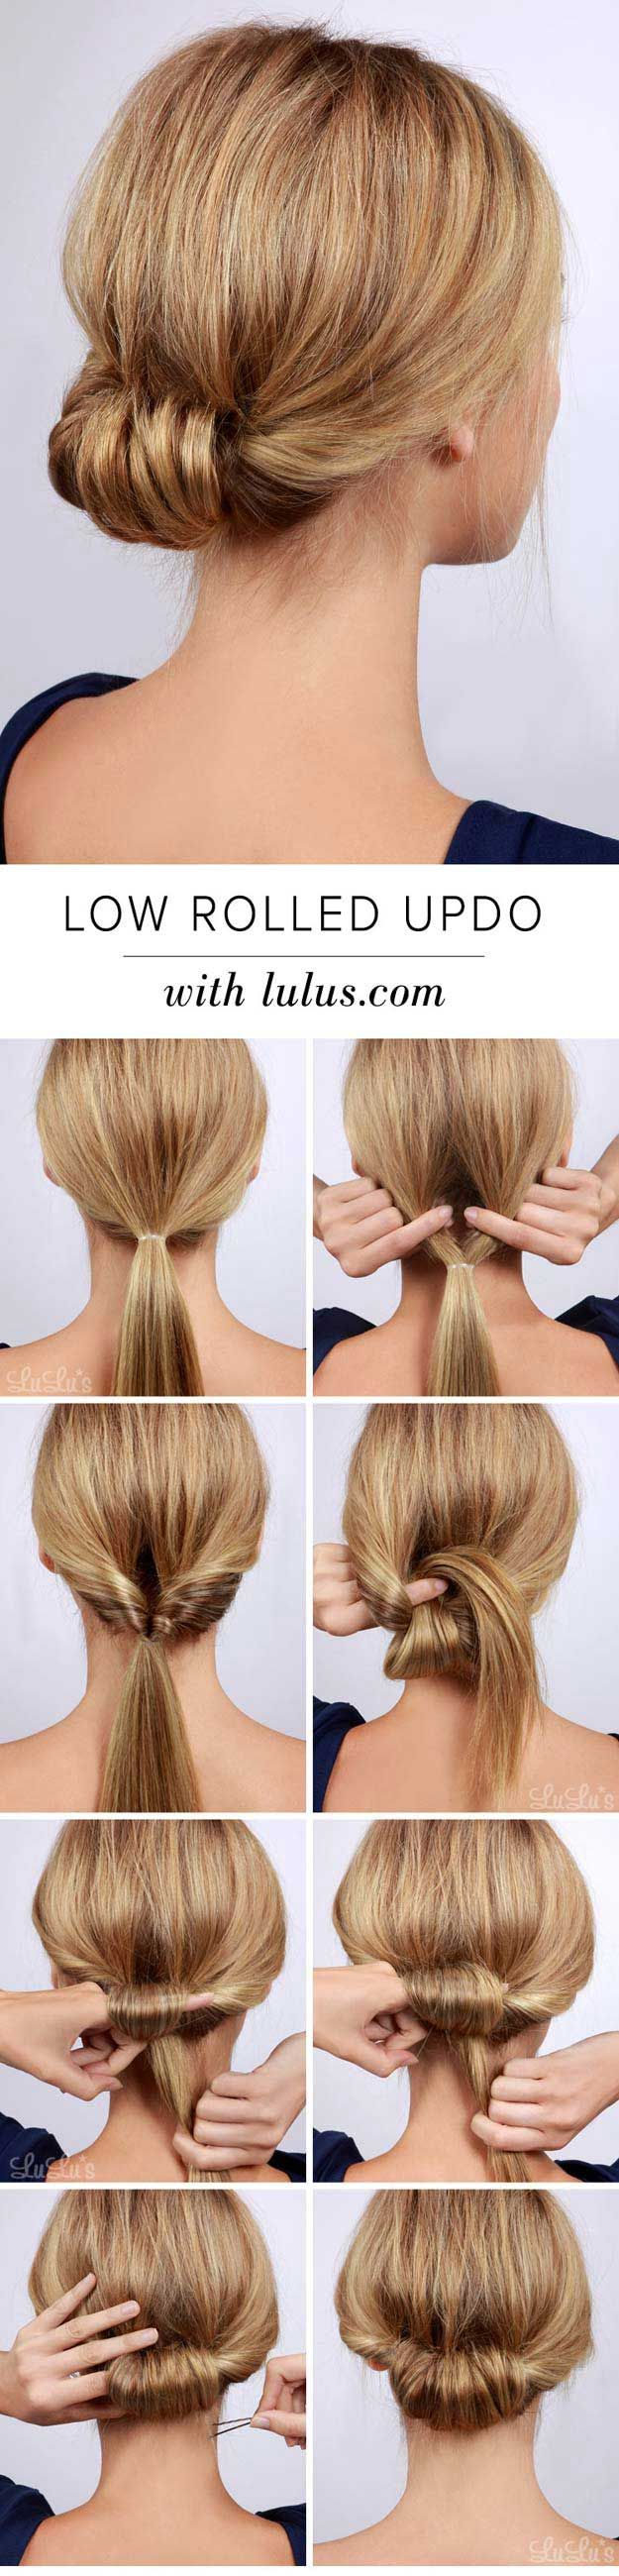 Best Hairstyles for Summer - Low Rolled Updo Hair Tutorial - Great For After Swi...